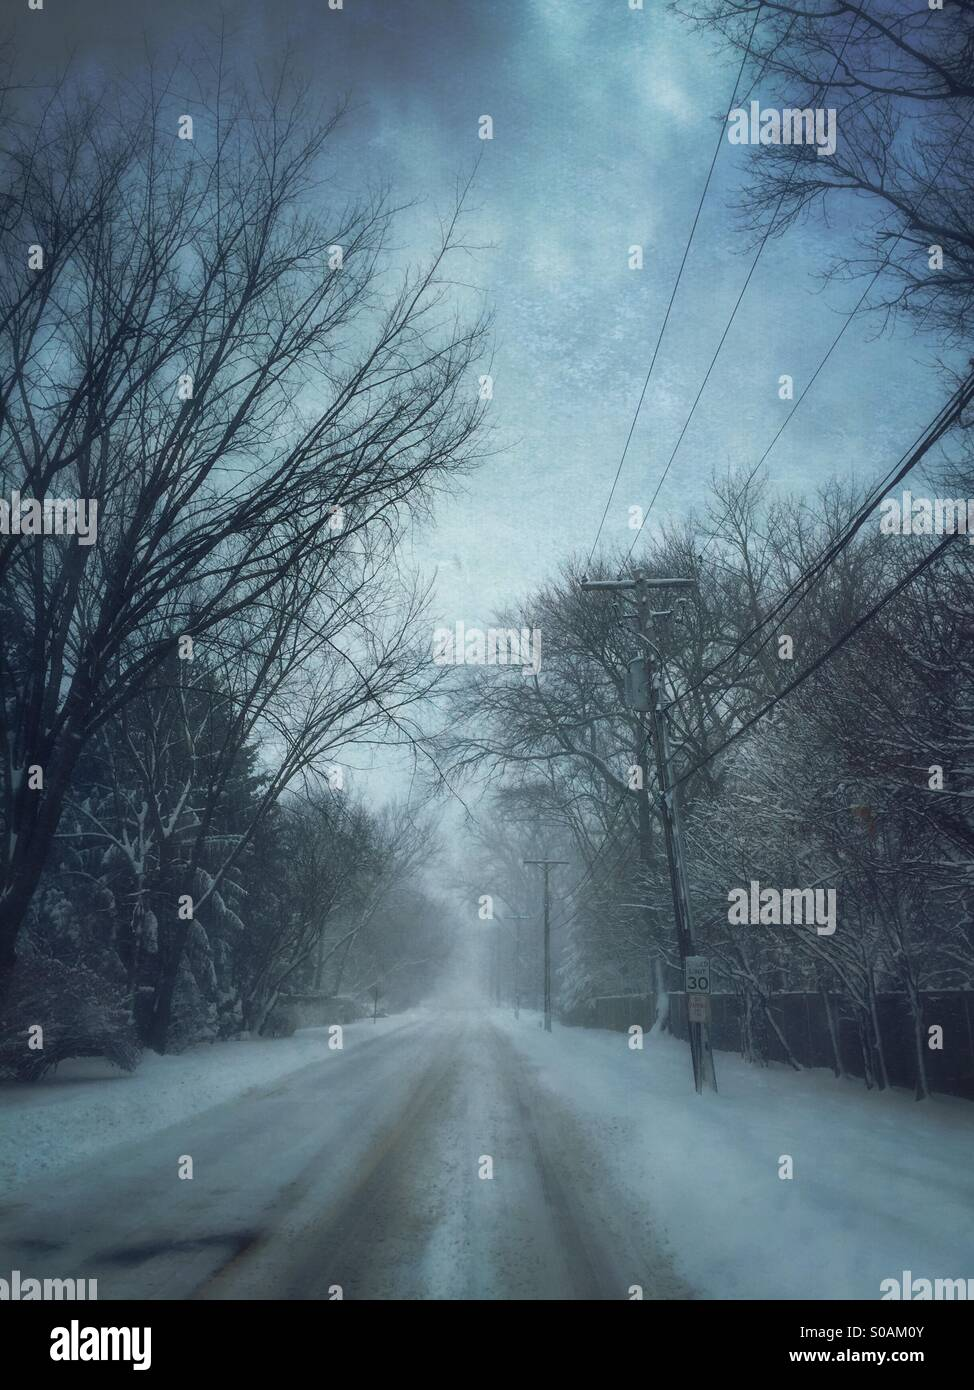 Winter street. - Stock Image